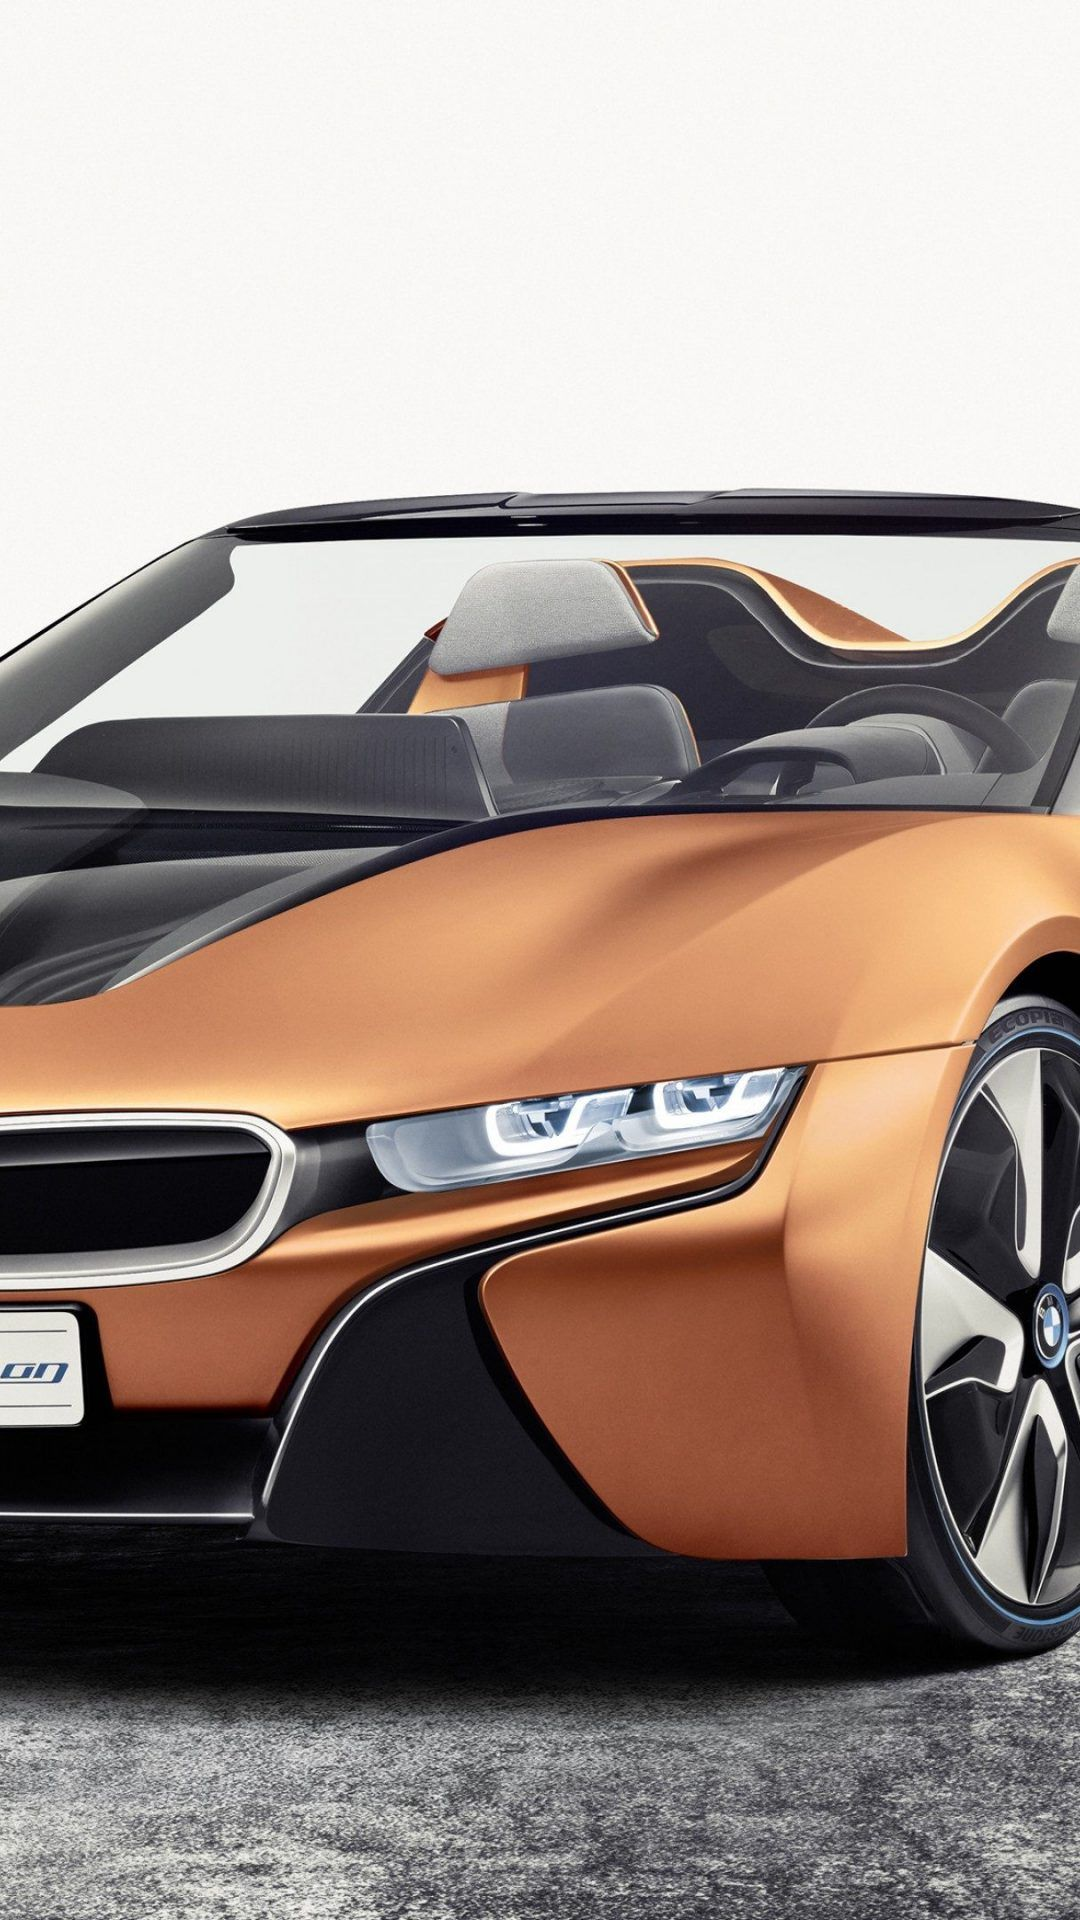 BMW Car Mobile Wallpapers - Wallpaper Cave